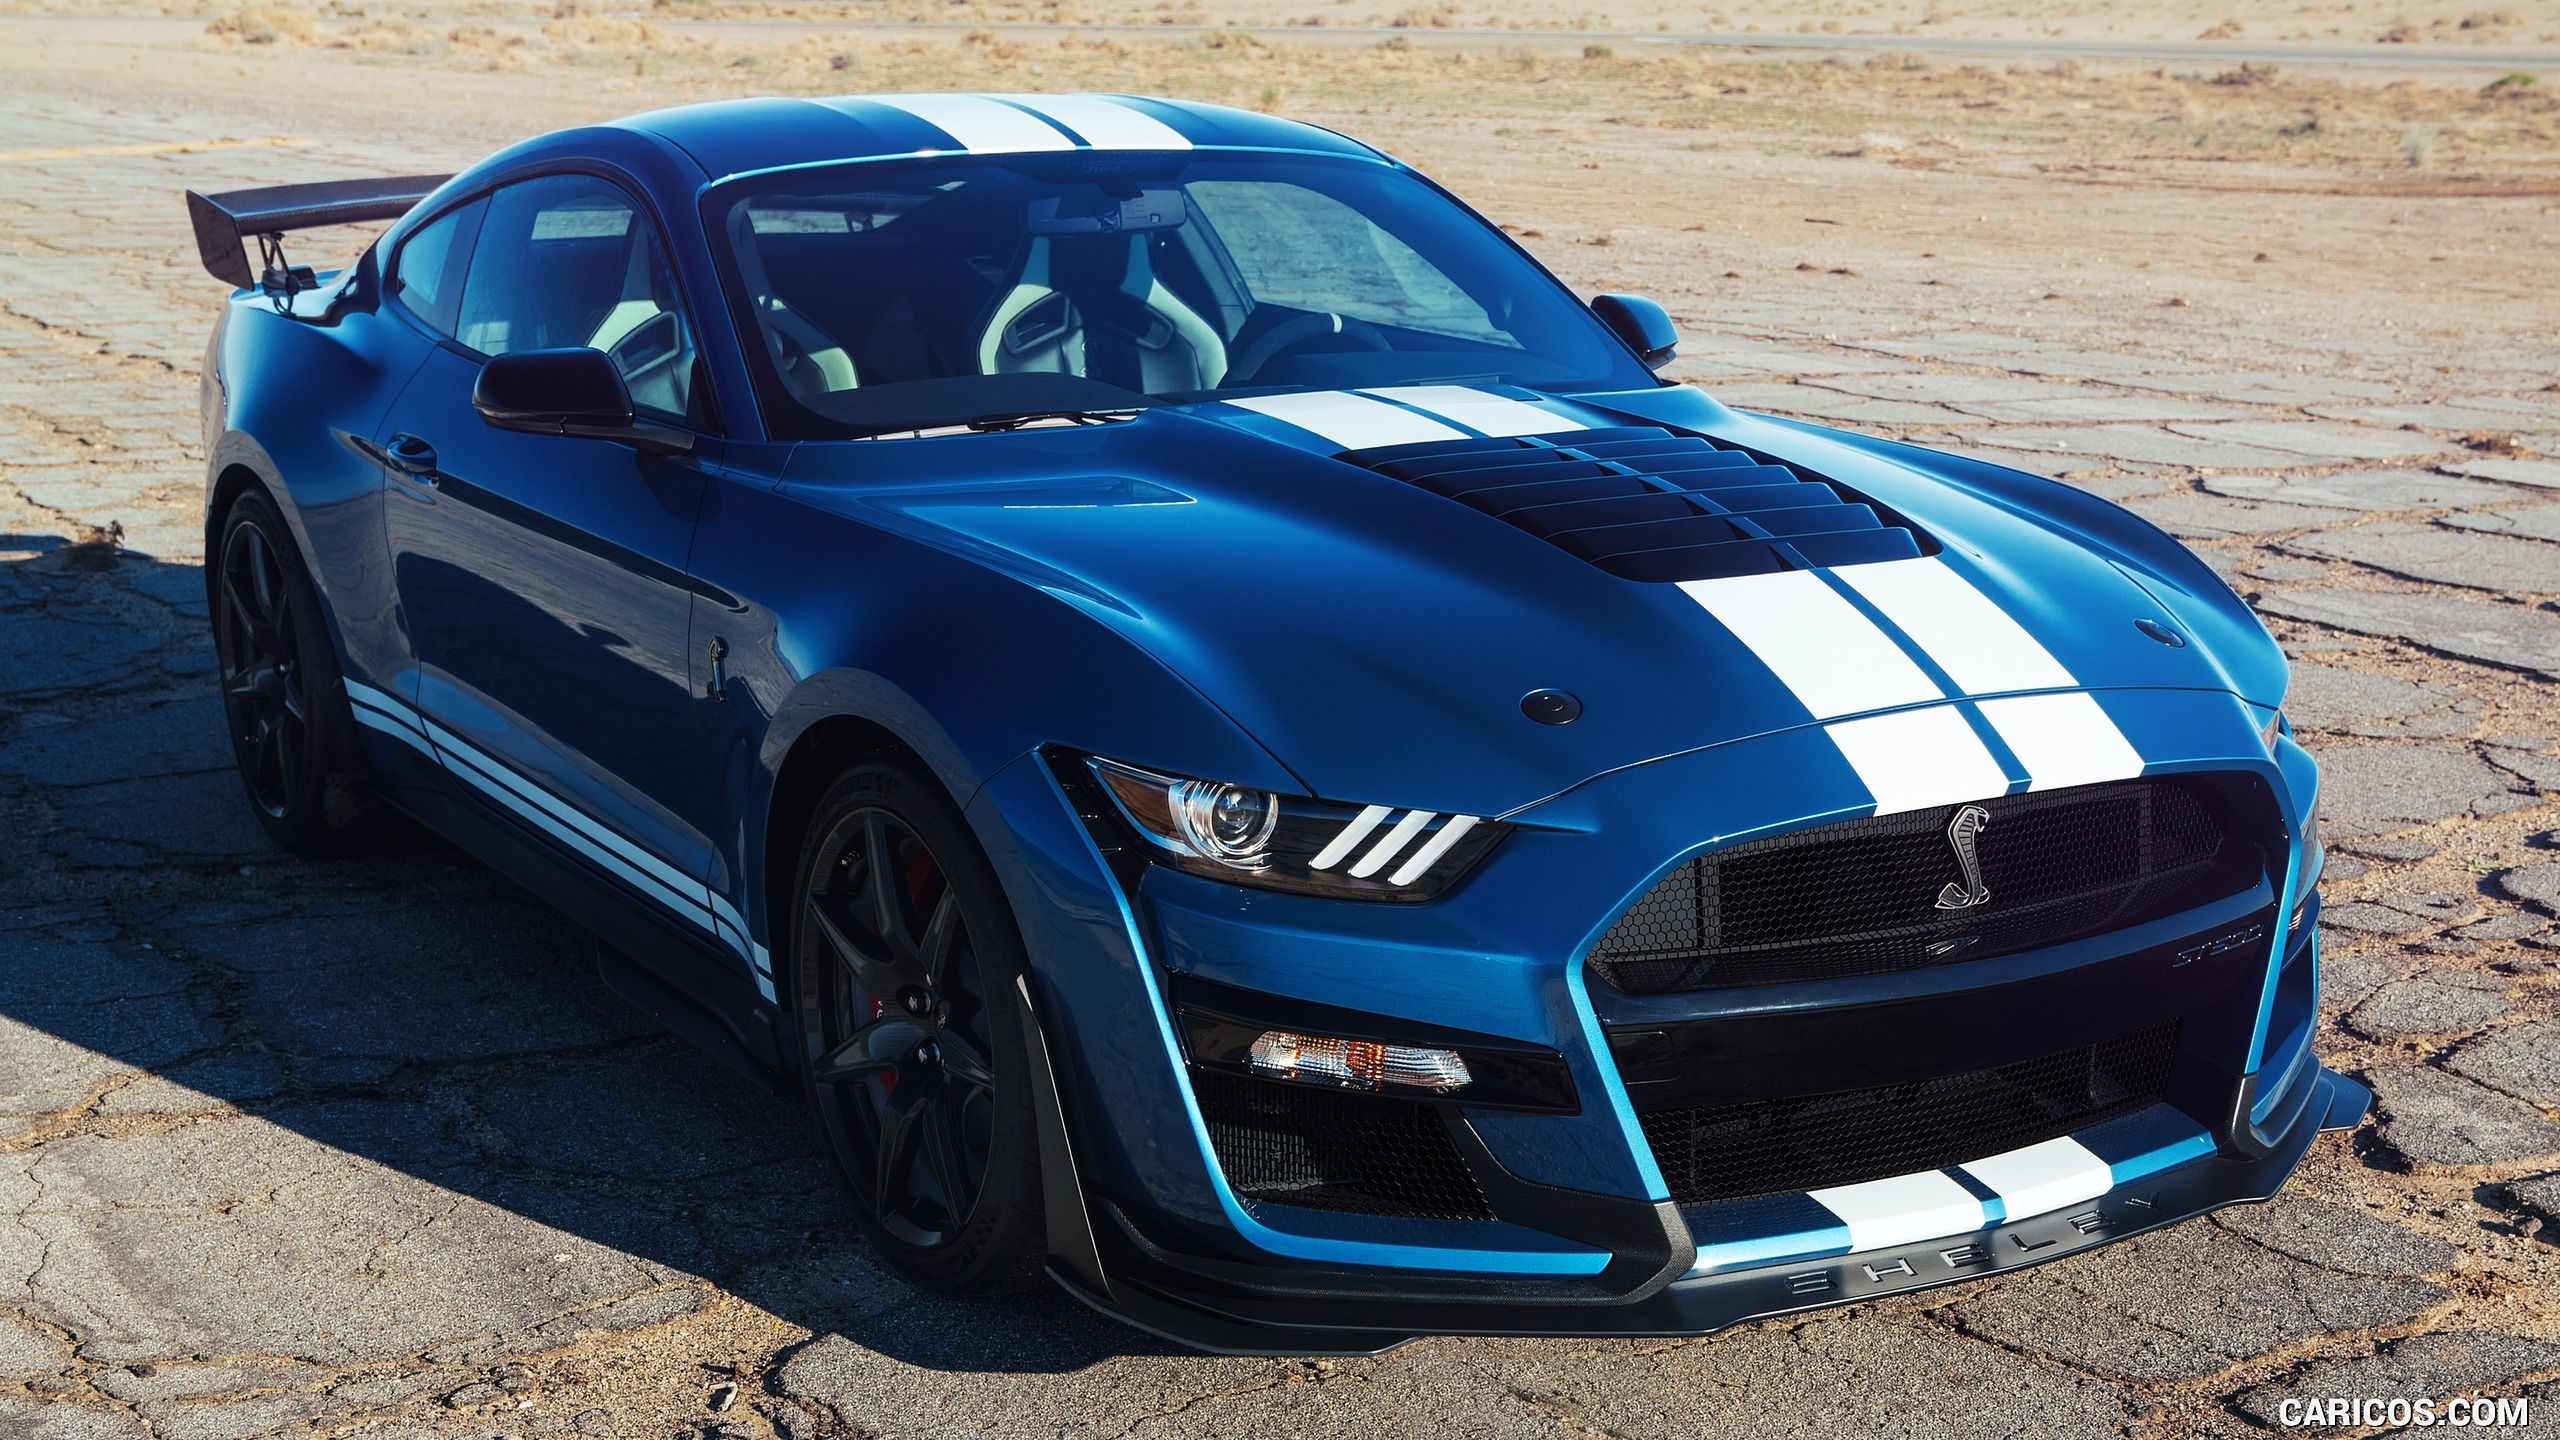 2020 Ford Mustang Shelby Gt500 With Images Mustang Shelby